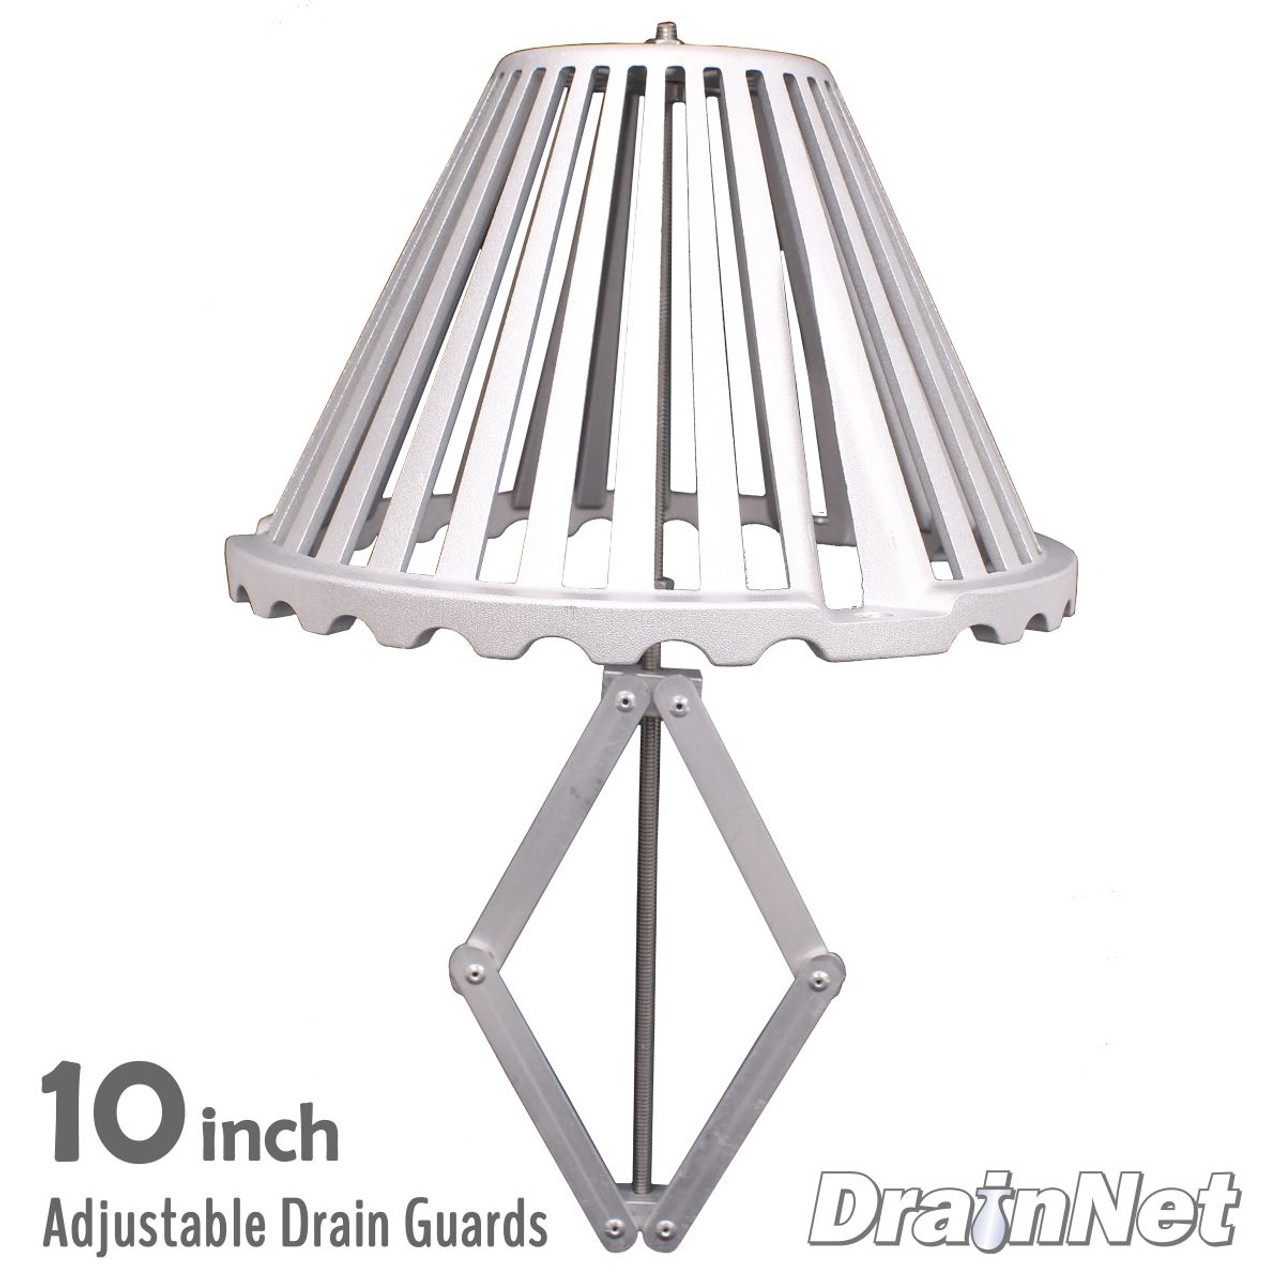 Adjustable Roof Drain Guards - 10 inch (ADG‐1044)